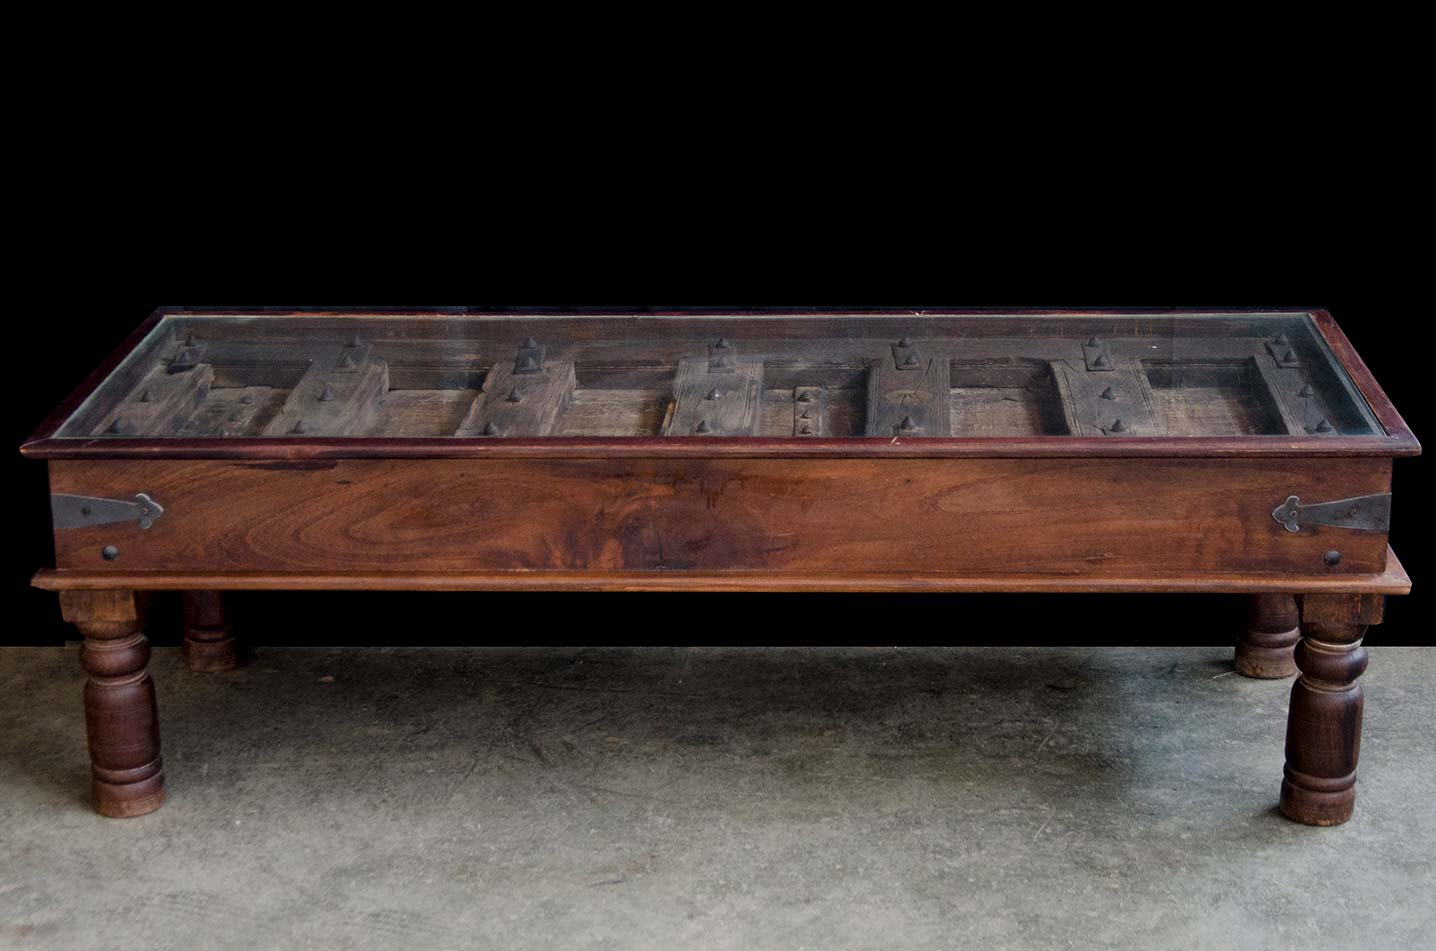 Wooden Coffee Table.Almera Wooden Coffee Table